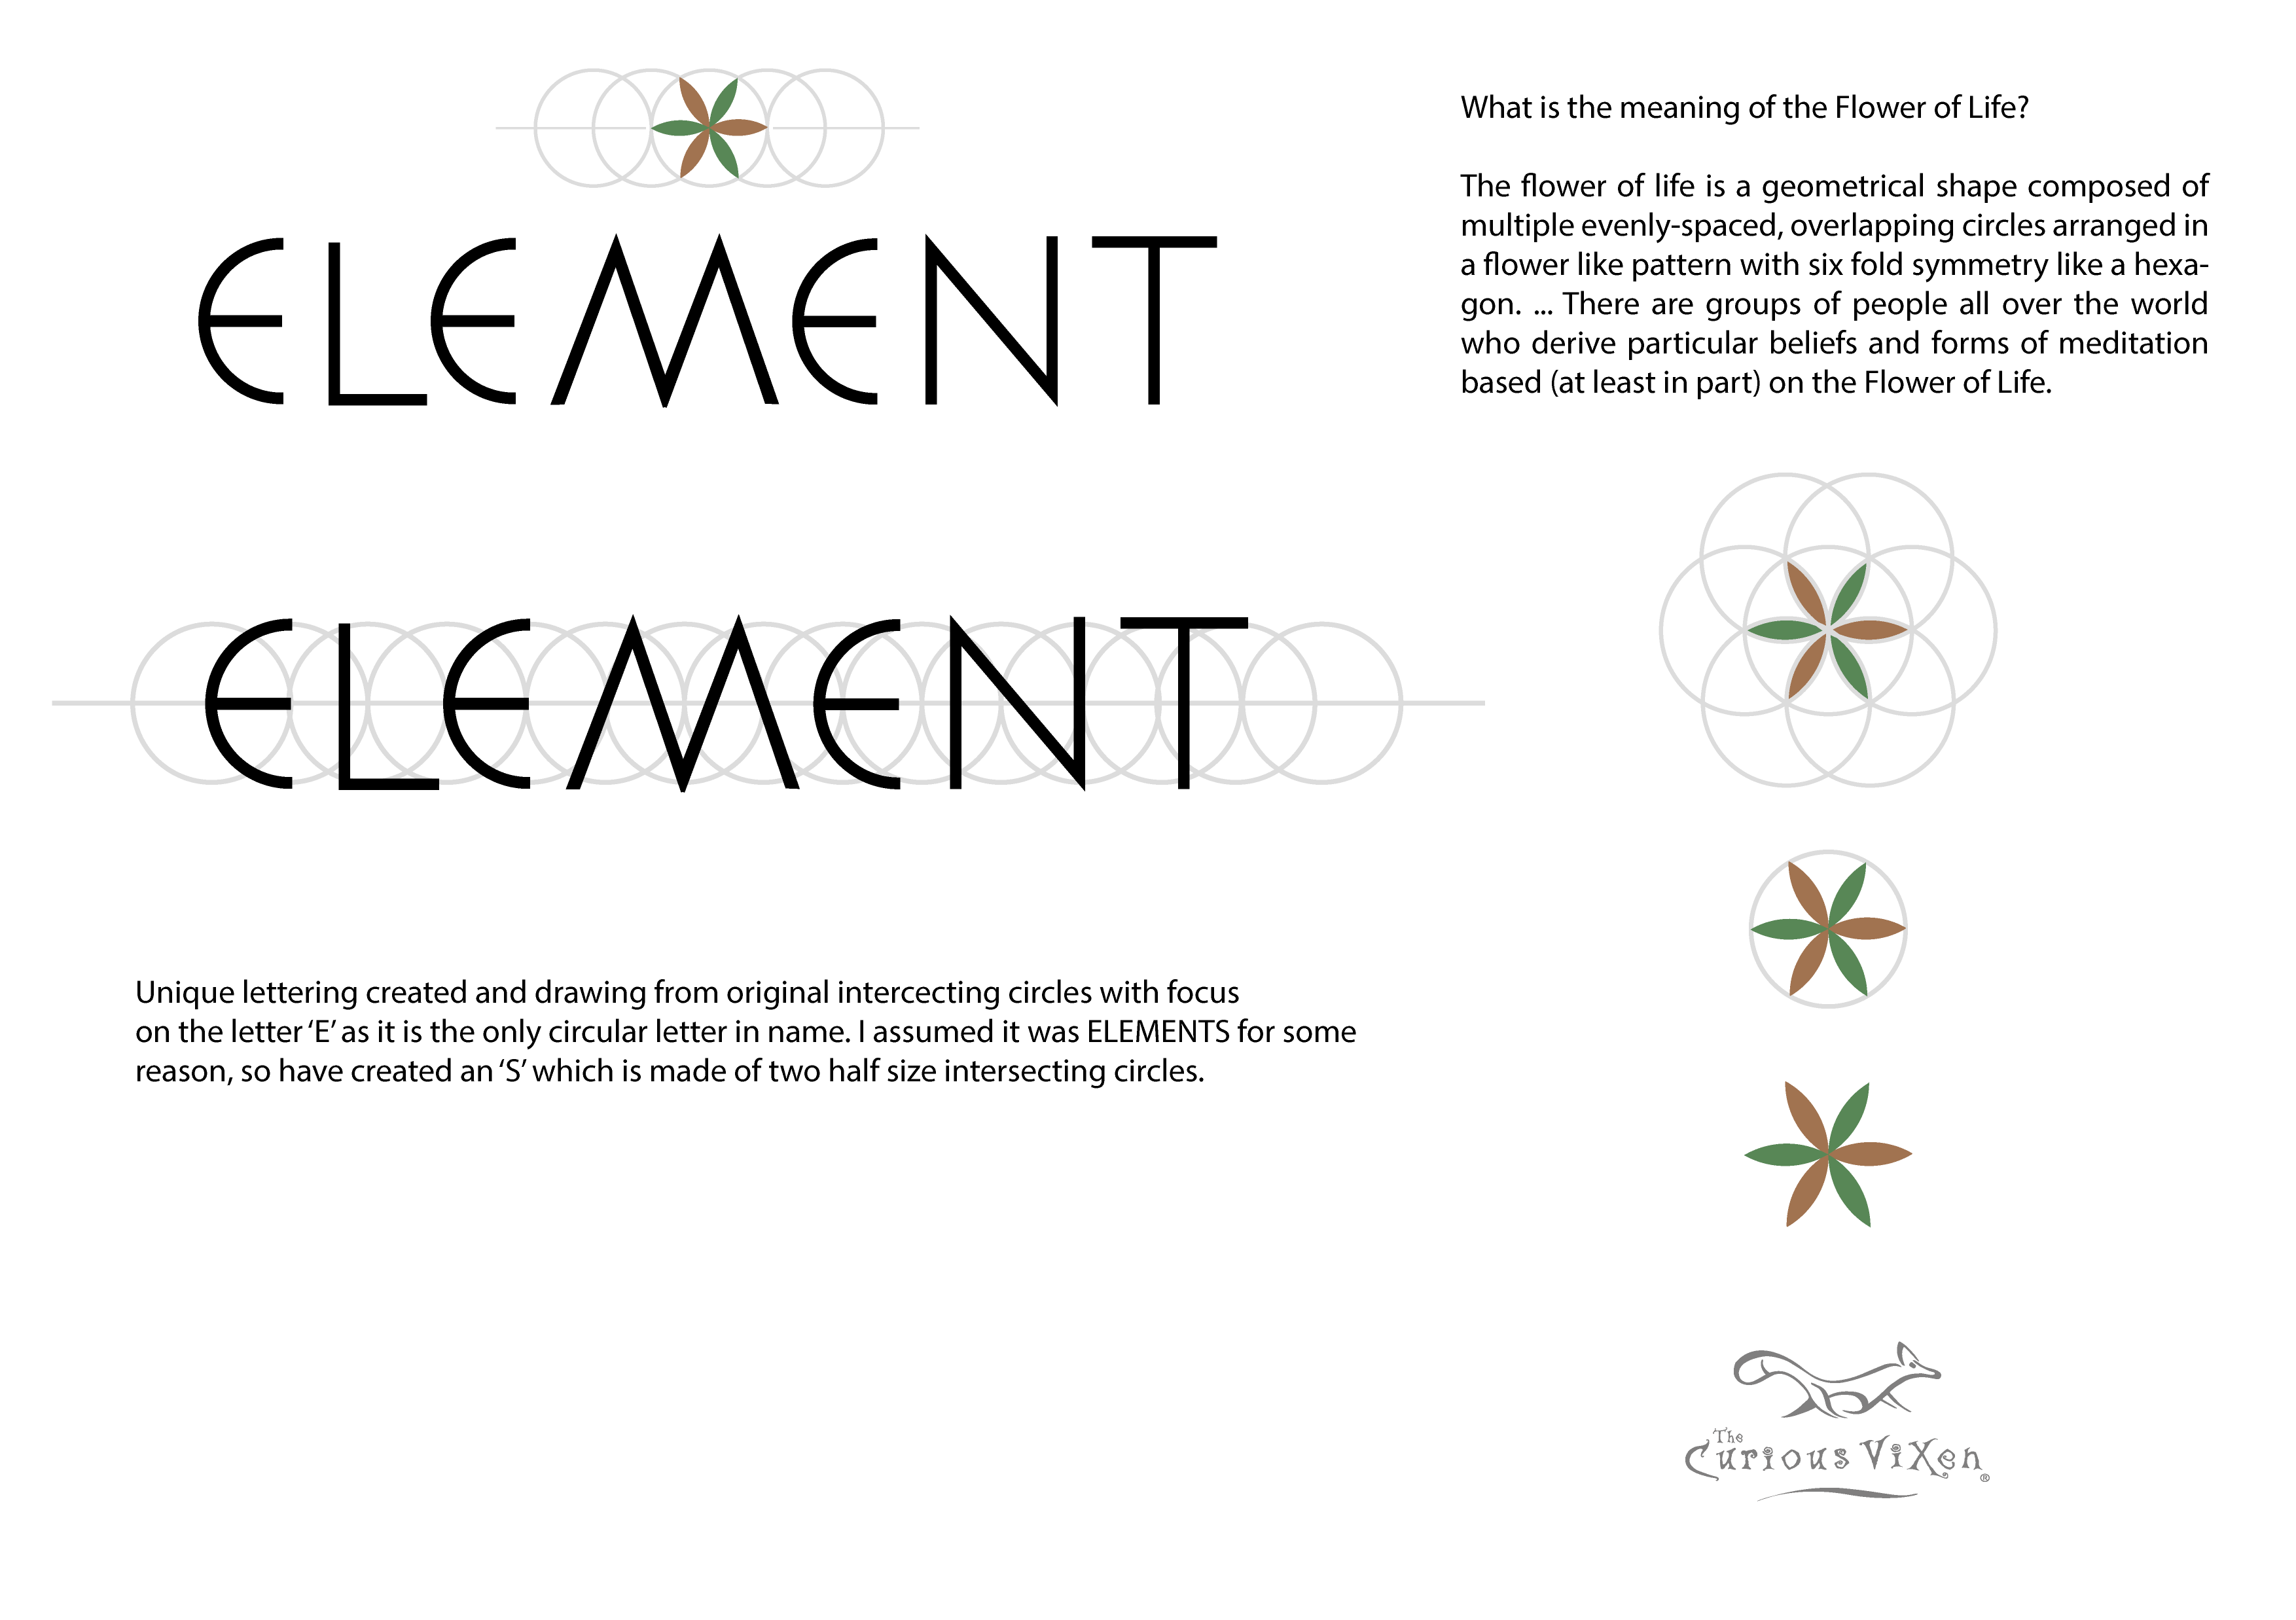 2. Develoment of Flower of Life